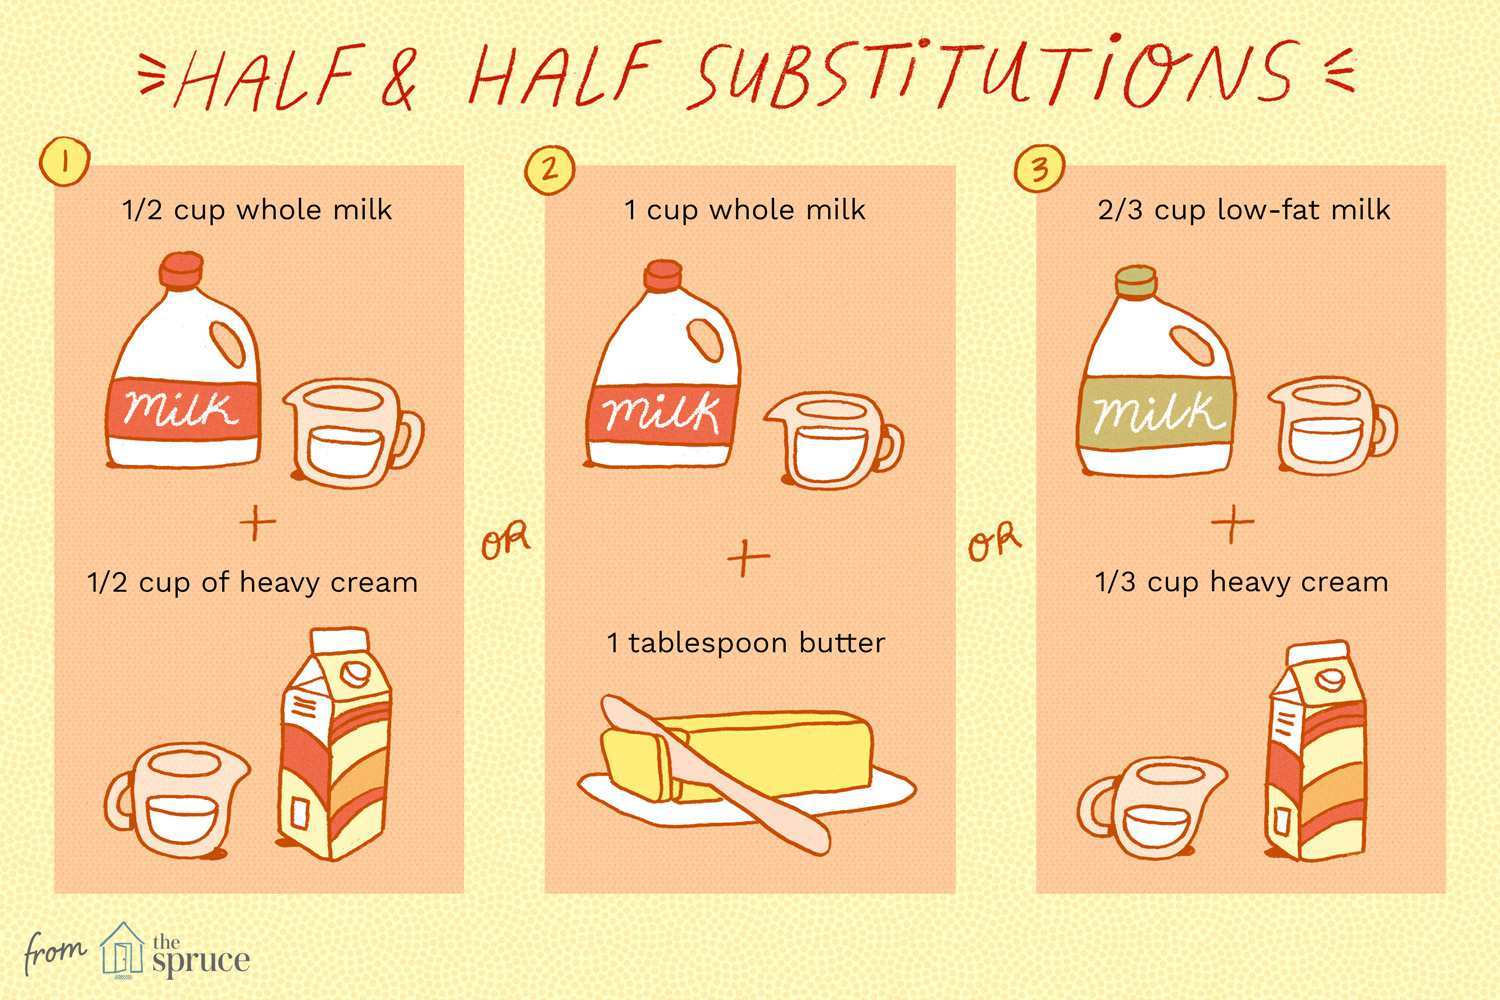 Illustration showing three substitutions for half-and-half